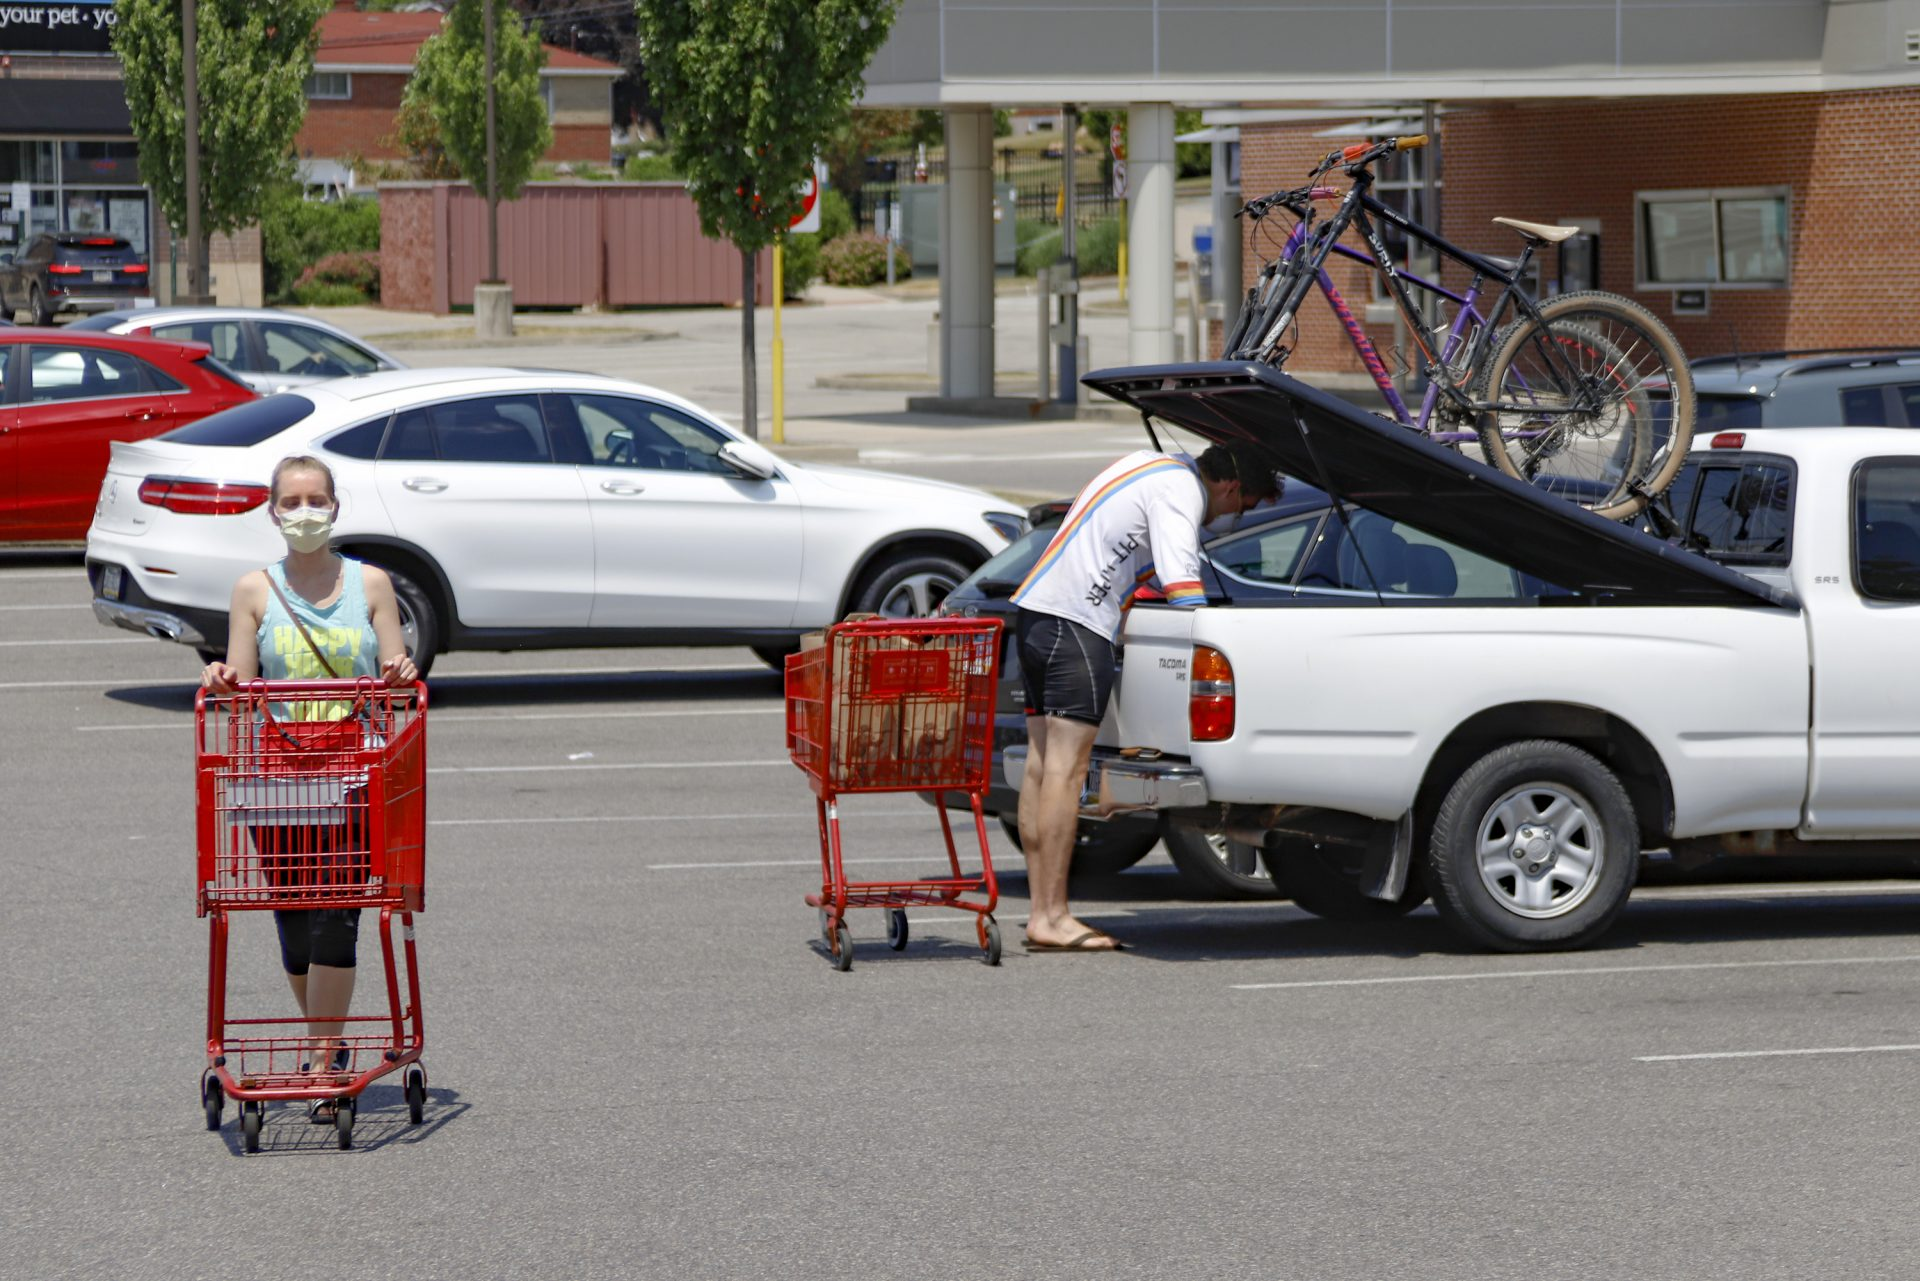 A woman and man wear COVID-19 protective masks as she pushes her shopping cart and a man loads his truck in a parking lot, Friday, July 3, 2020, in McCandless, Pa. Gov. Tom Wolf's more expansive mask order issued this week as the coronavirus shows new signs of life in Pennsylvania and the July Fourth holiday starts has been met with hostility from Republicans objecting to the Democrat's use of power or even to wearing a mask itself.